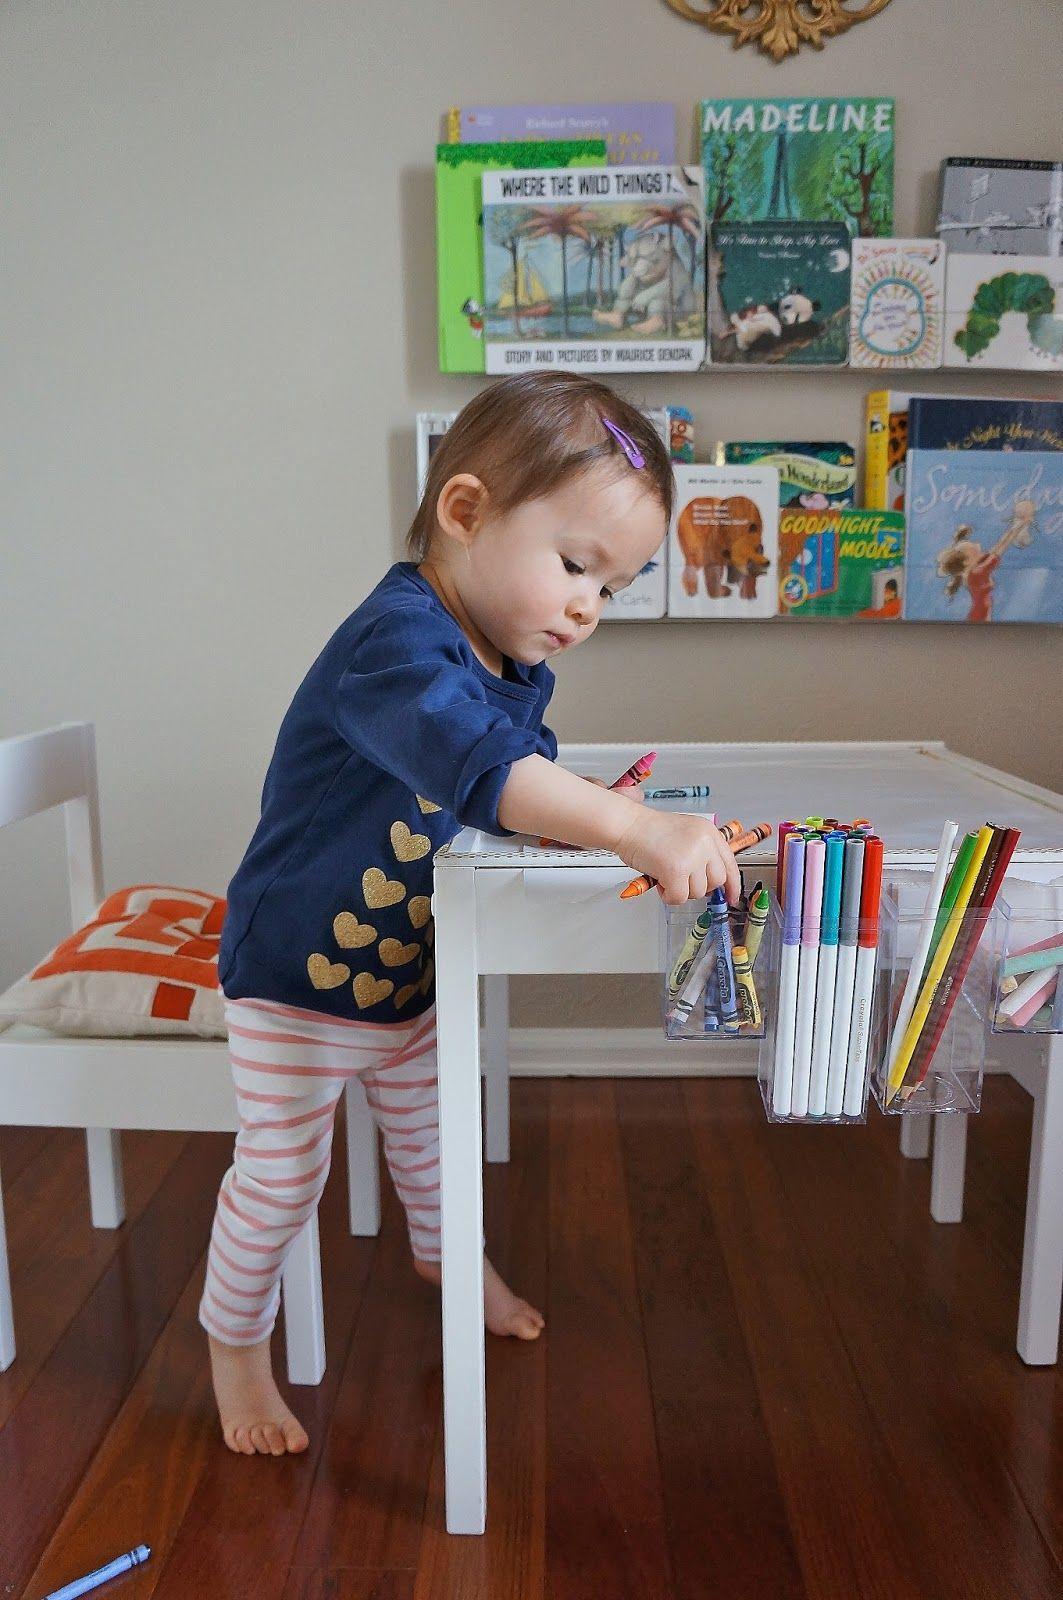 Child table and chairs ikea - Freckles Chick Quinn S Art Table An Ikea Latt Hack Love This Ikea Hack Art Table For Toddlers Plus This Table And Chair Set Is So Cheap I Can Get A